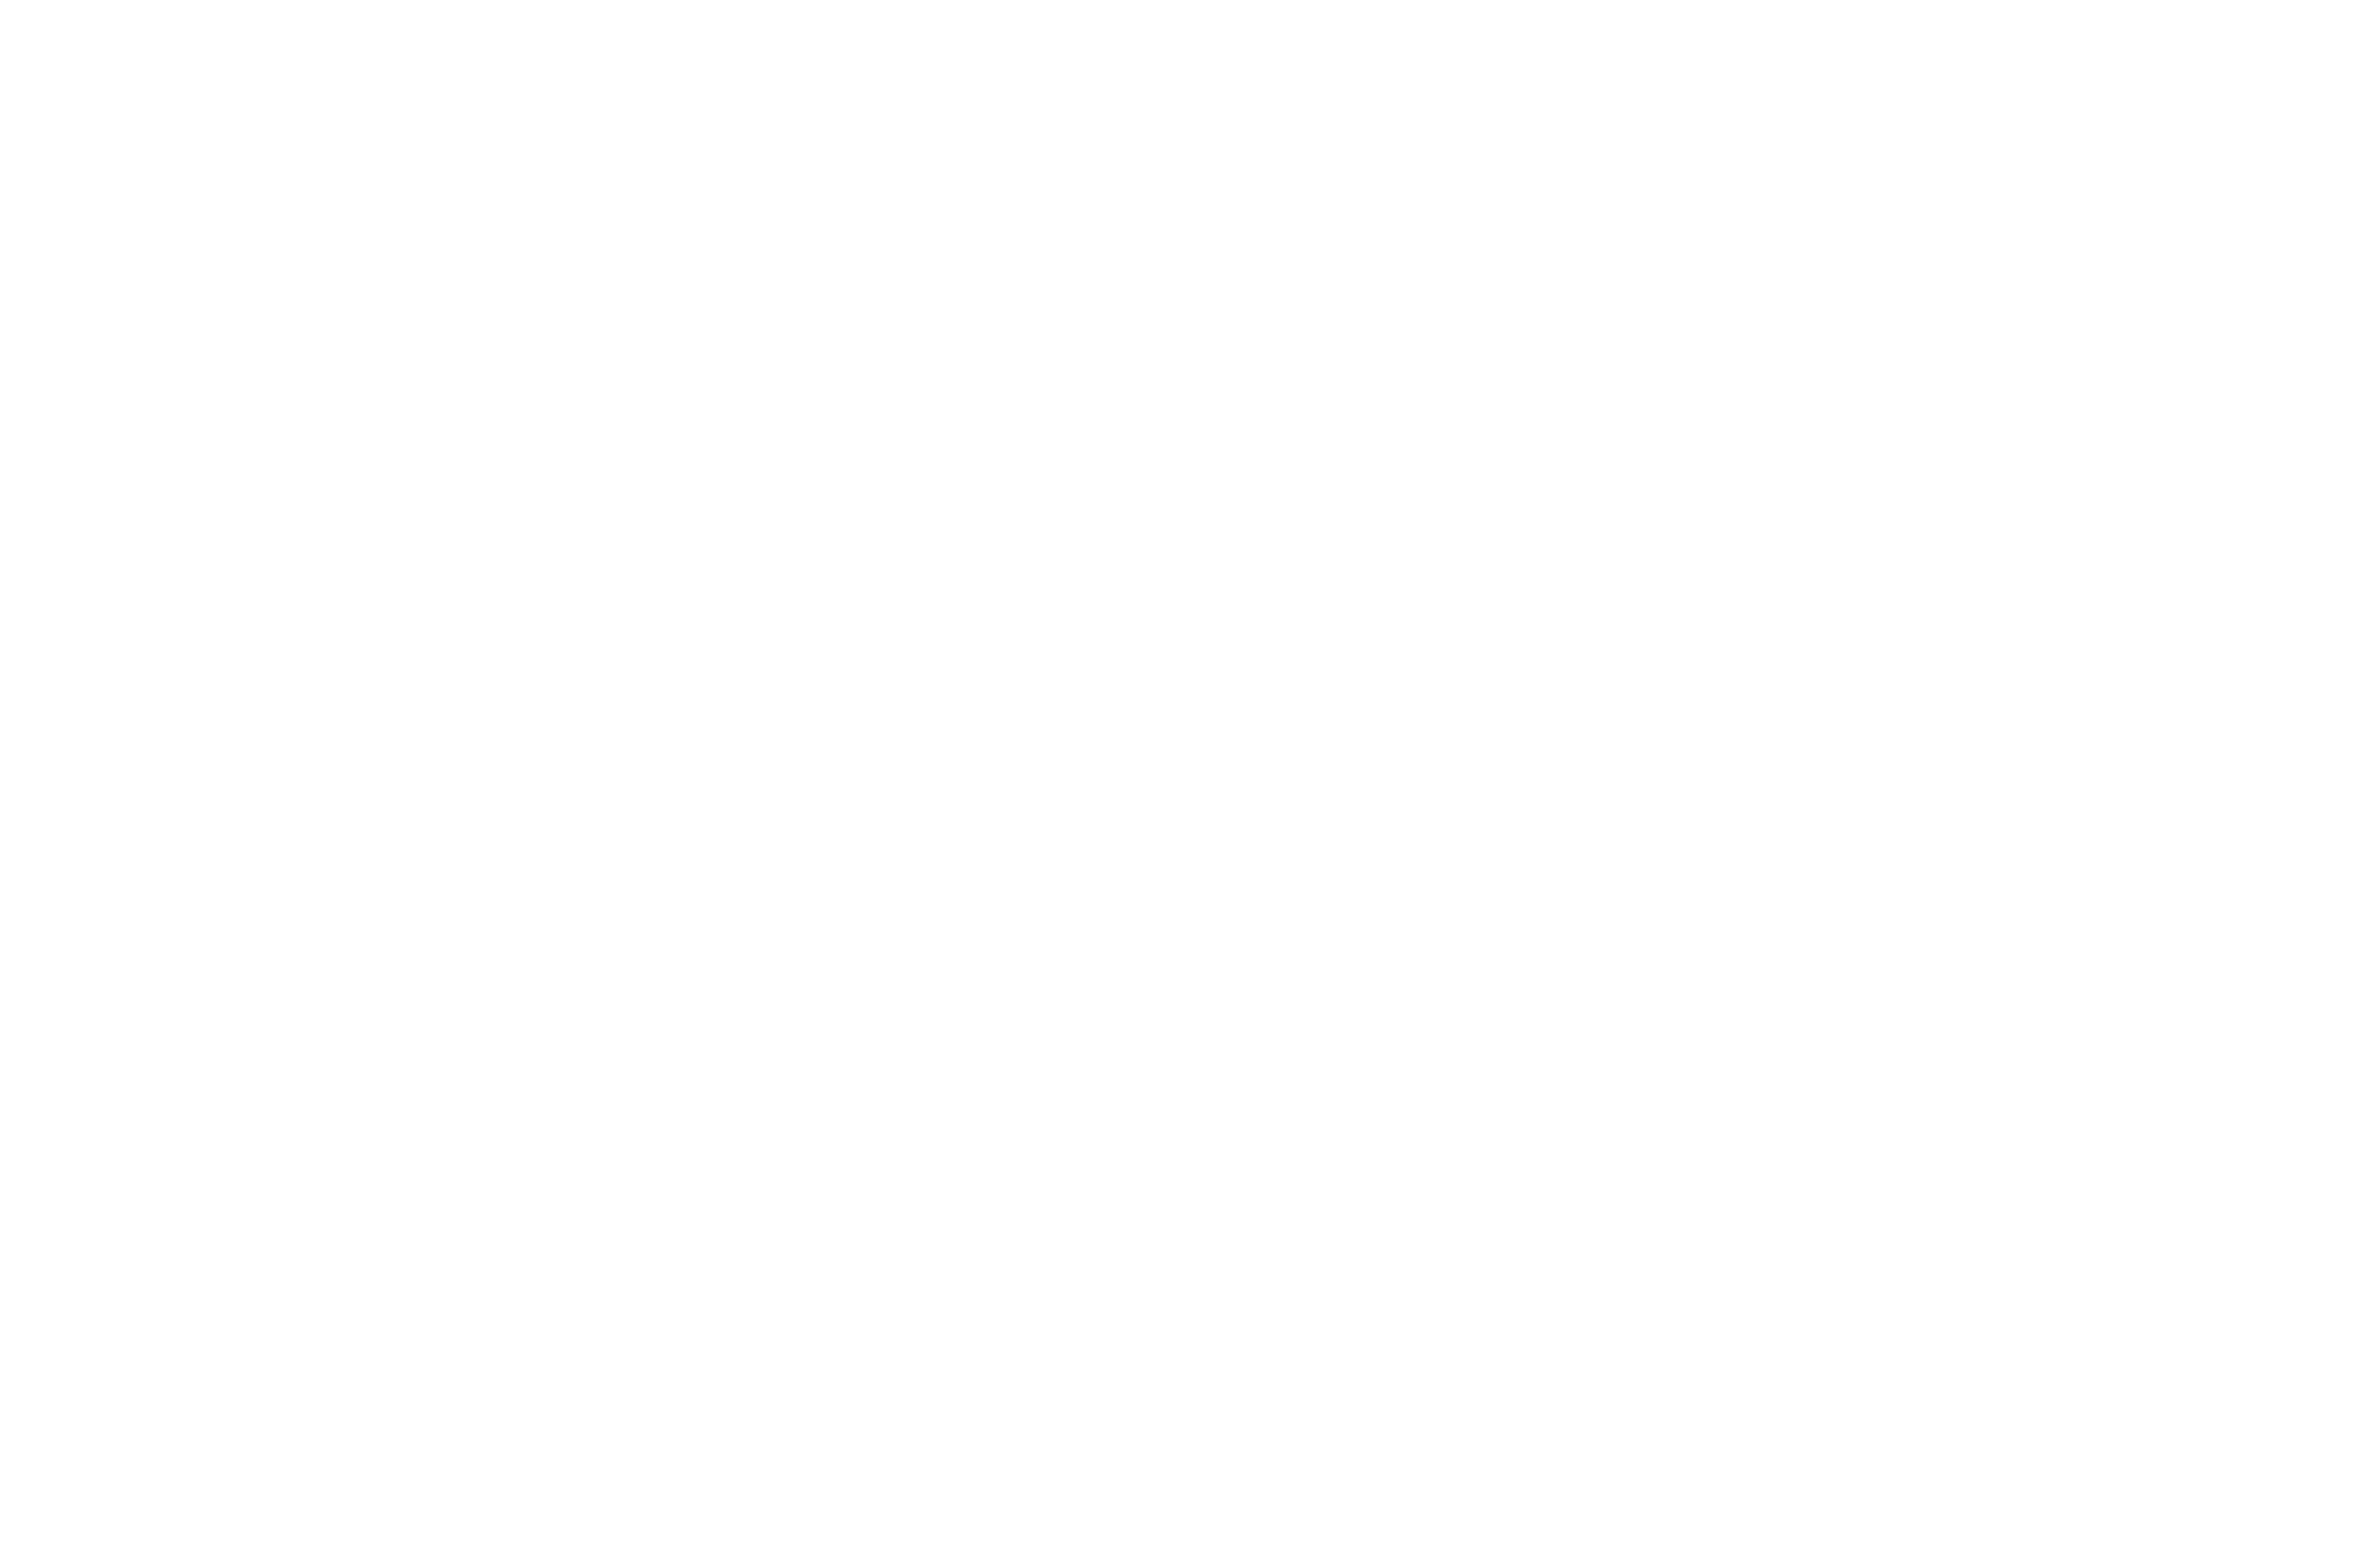 OFFICIALSELECTION-AFRIFF-2019